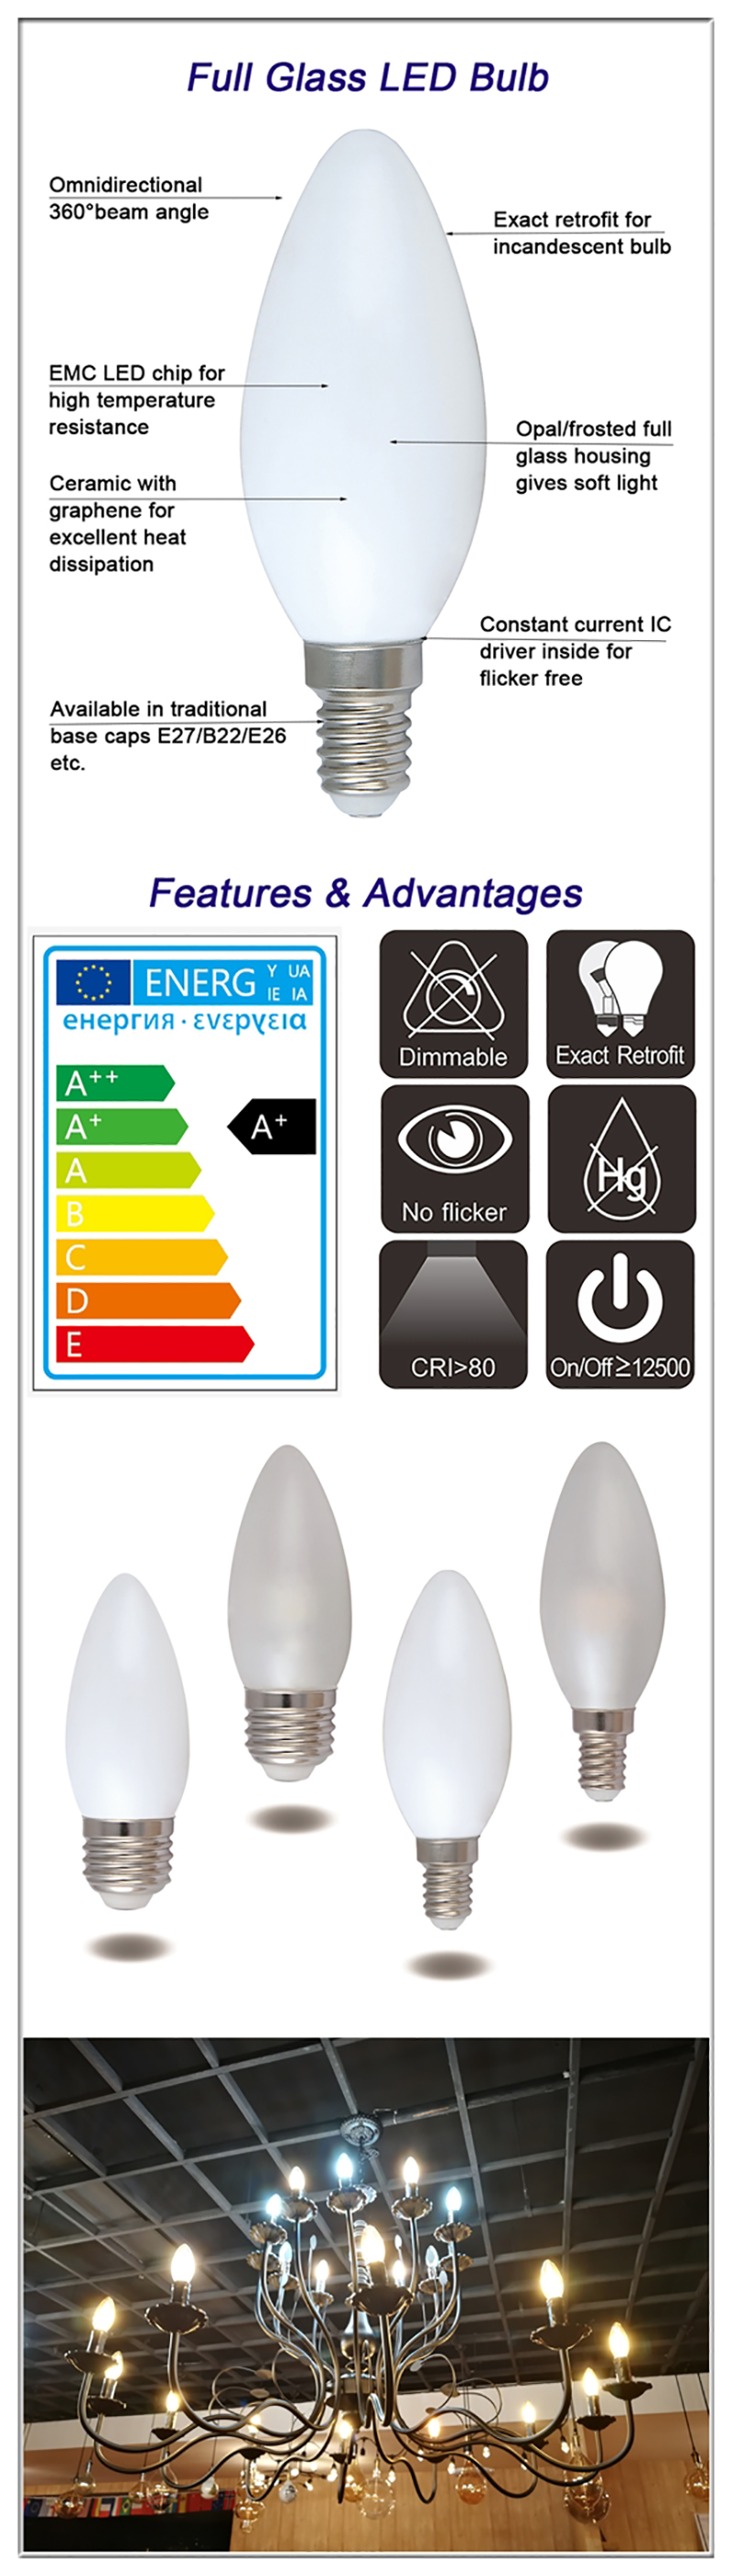 LED Candle C35 bulbs details